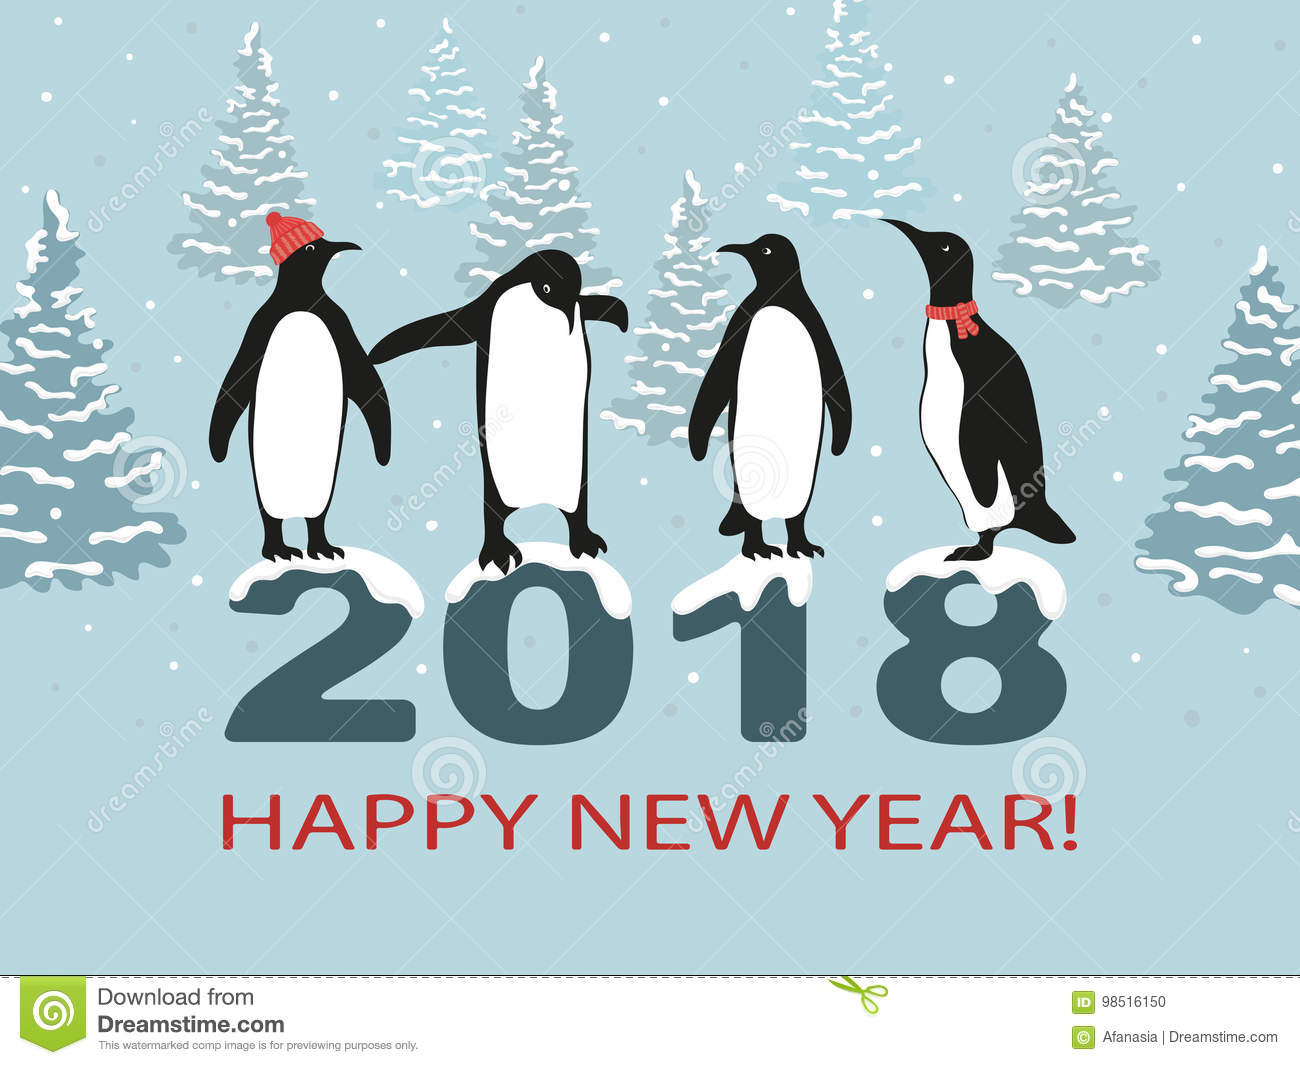 happy new year 2018 greeting card design with cute penguins